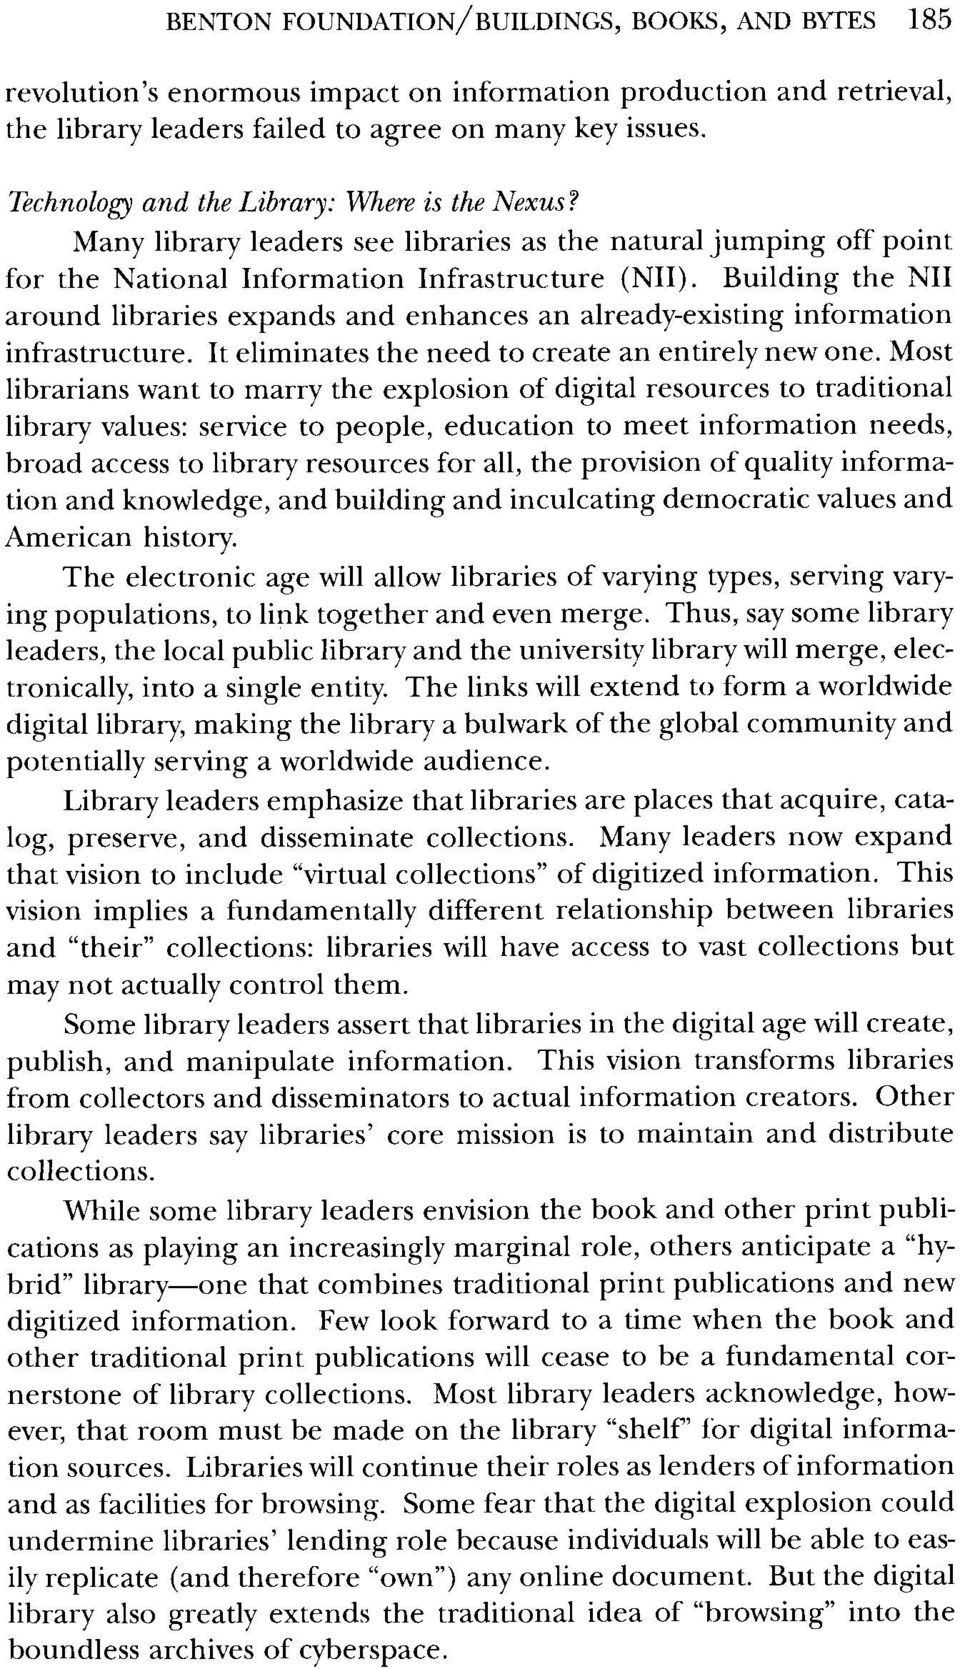 Building the NII around libraries expands and enhances an already-existing information infrastructure. It eliminates the need to create an entirely new one.